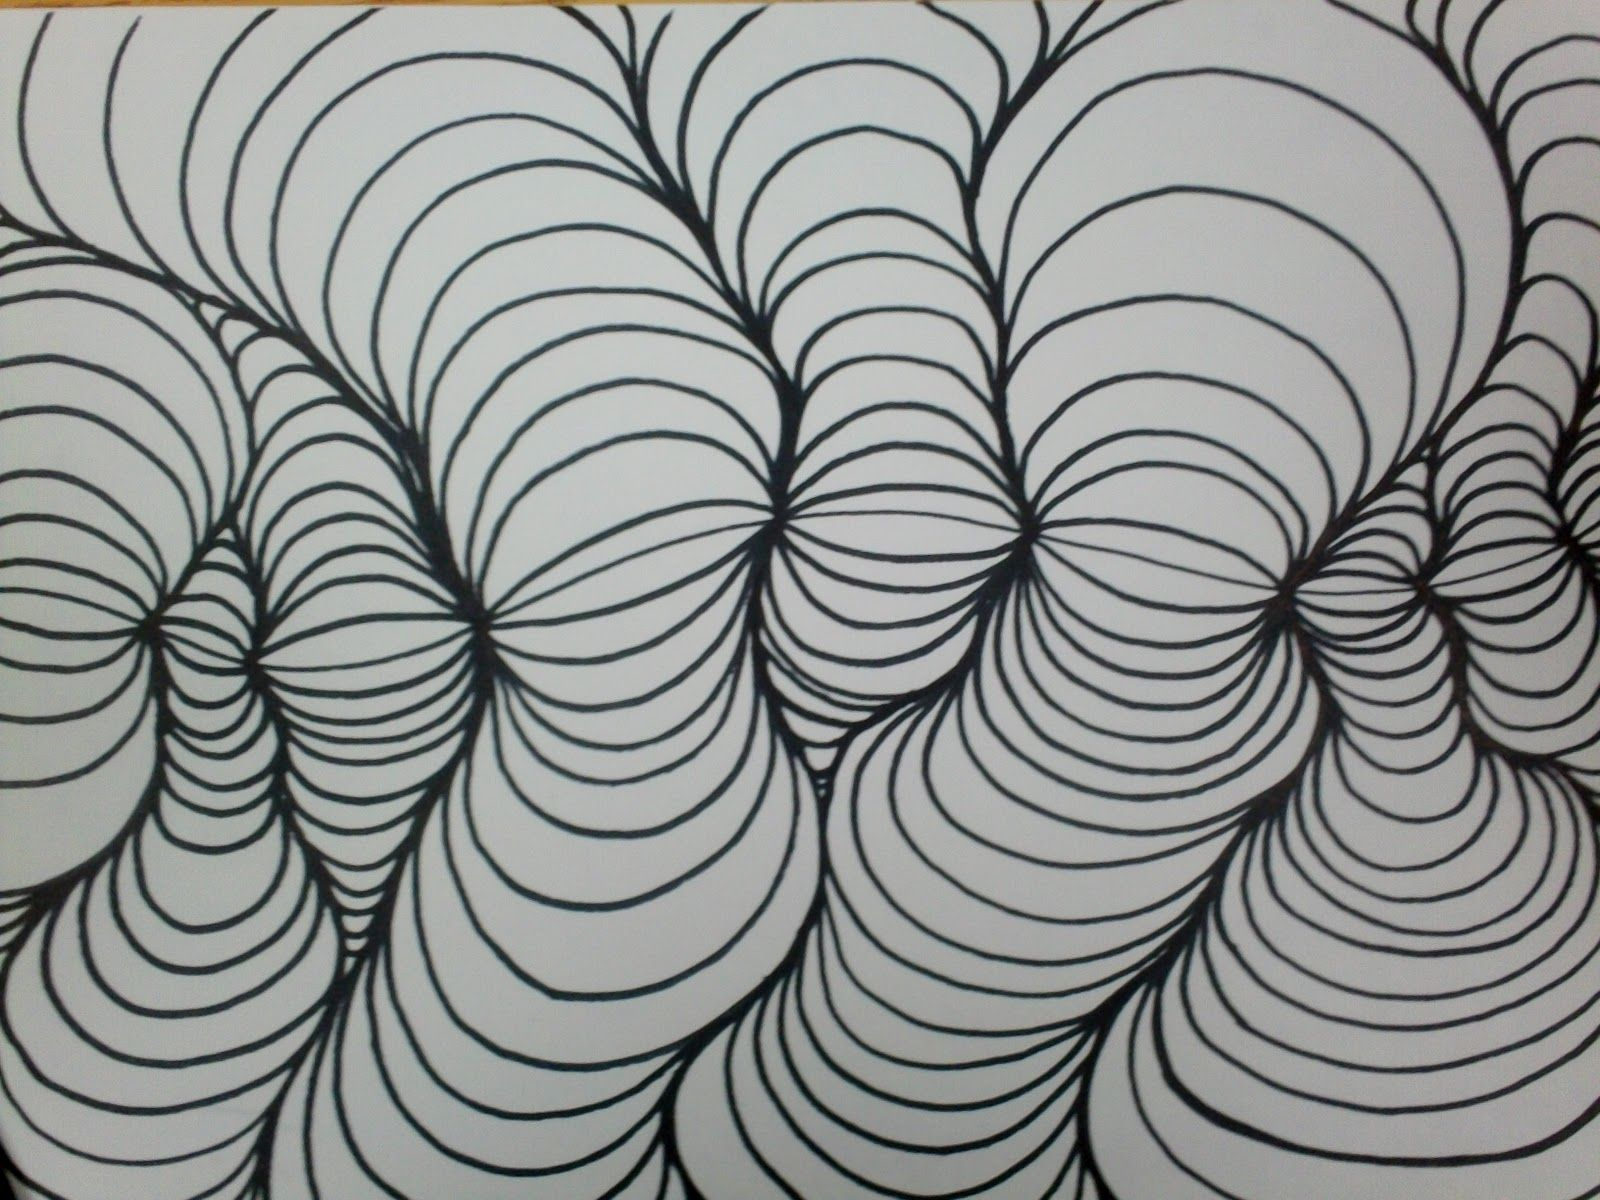 I Was Asked If I Could Go Into A Bit More Detail Concerning The Line Design Process I Think The Easiest Way Is W Doodle Art Designs Easy Op Art Line